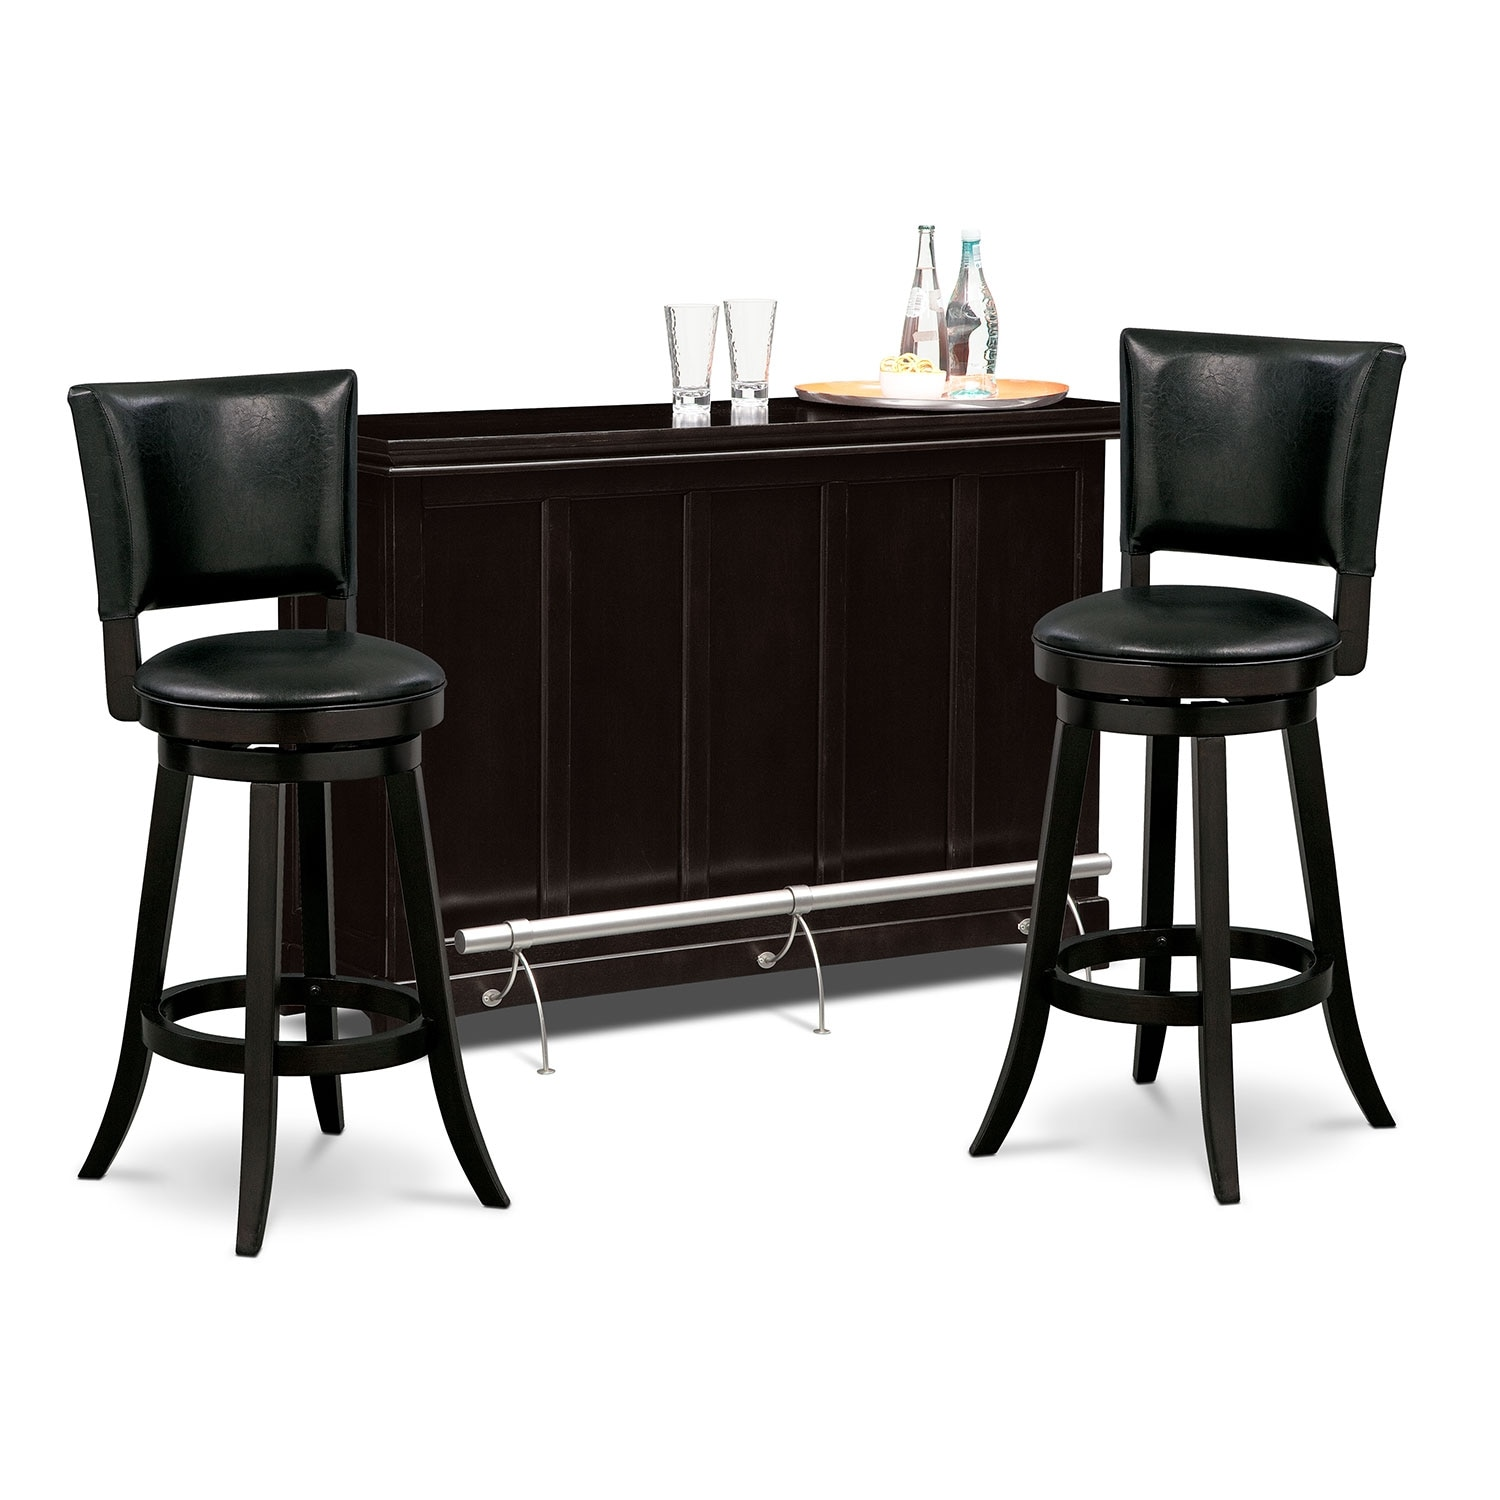 Carlton II Easton 3 Pc. Bar Set